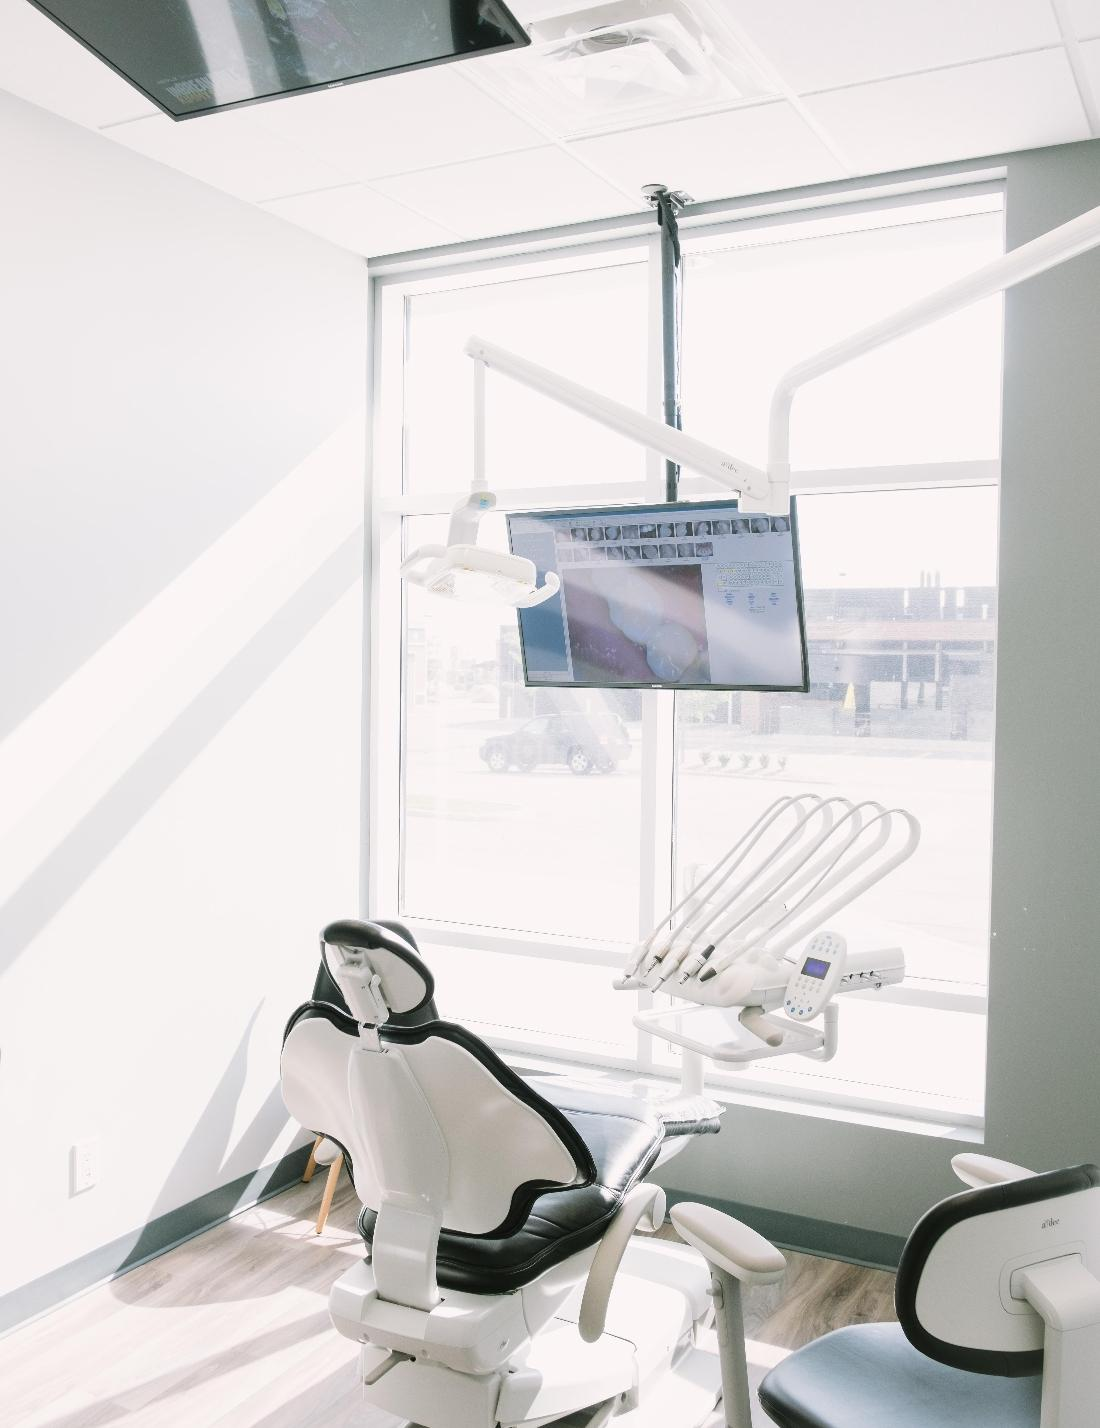 Dental chair in clinic | Barrie ON Dentist